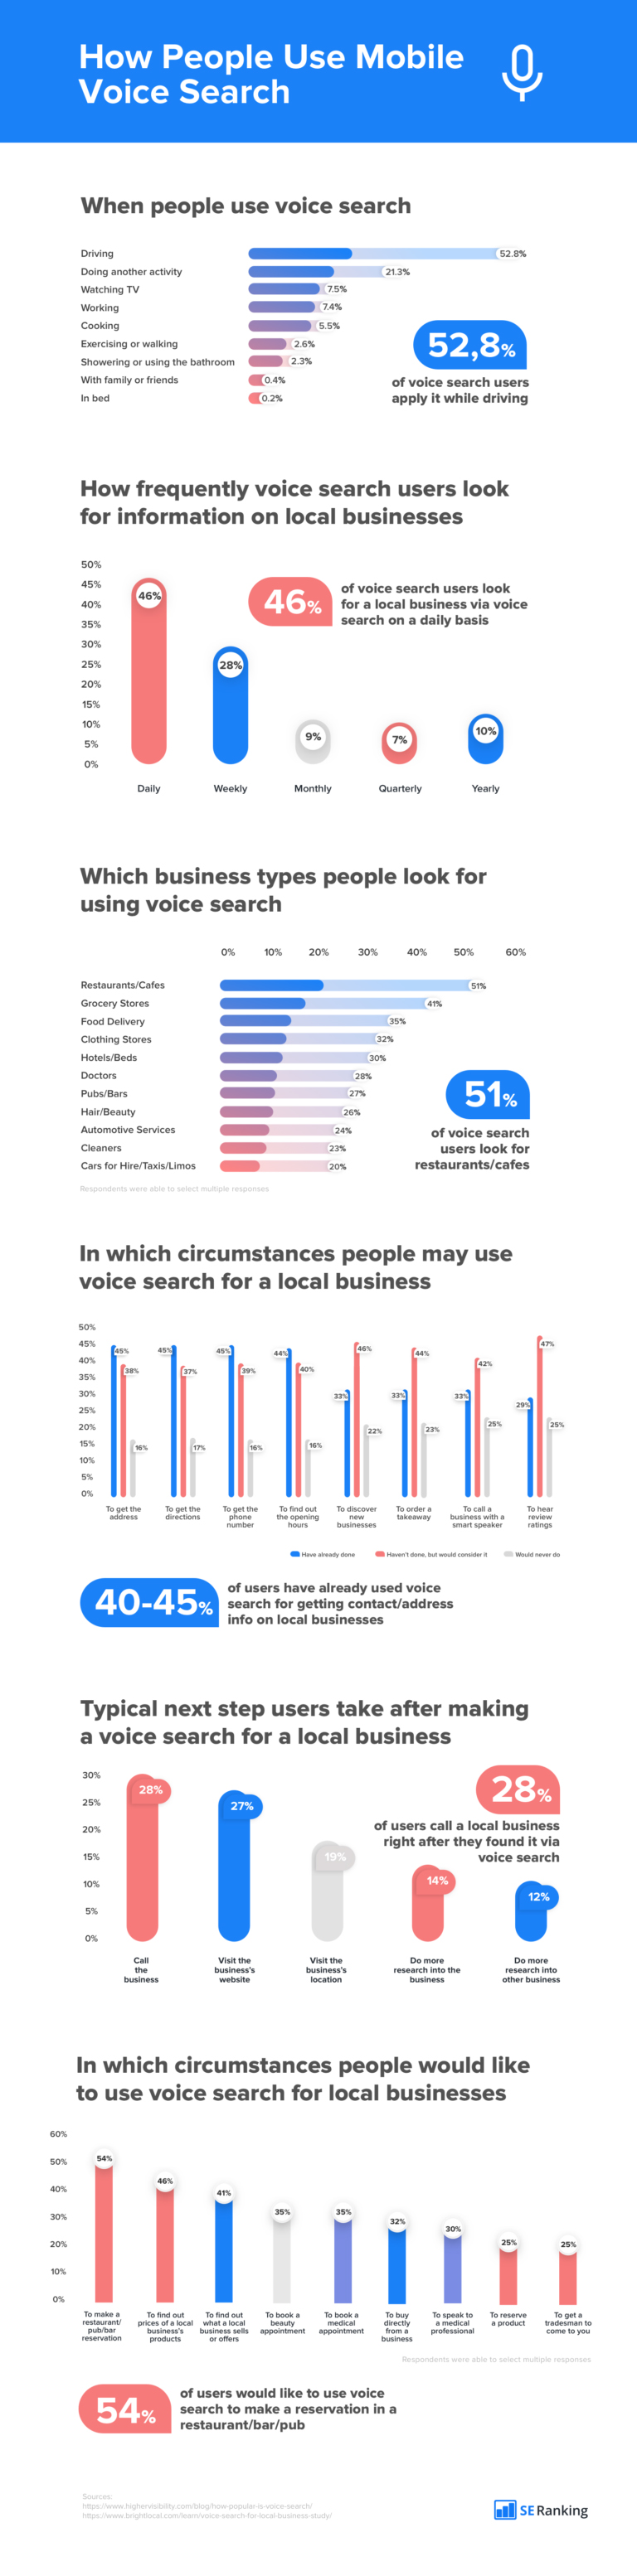 Infographic looks at the rising use of voice search